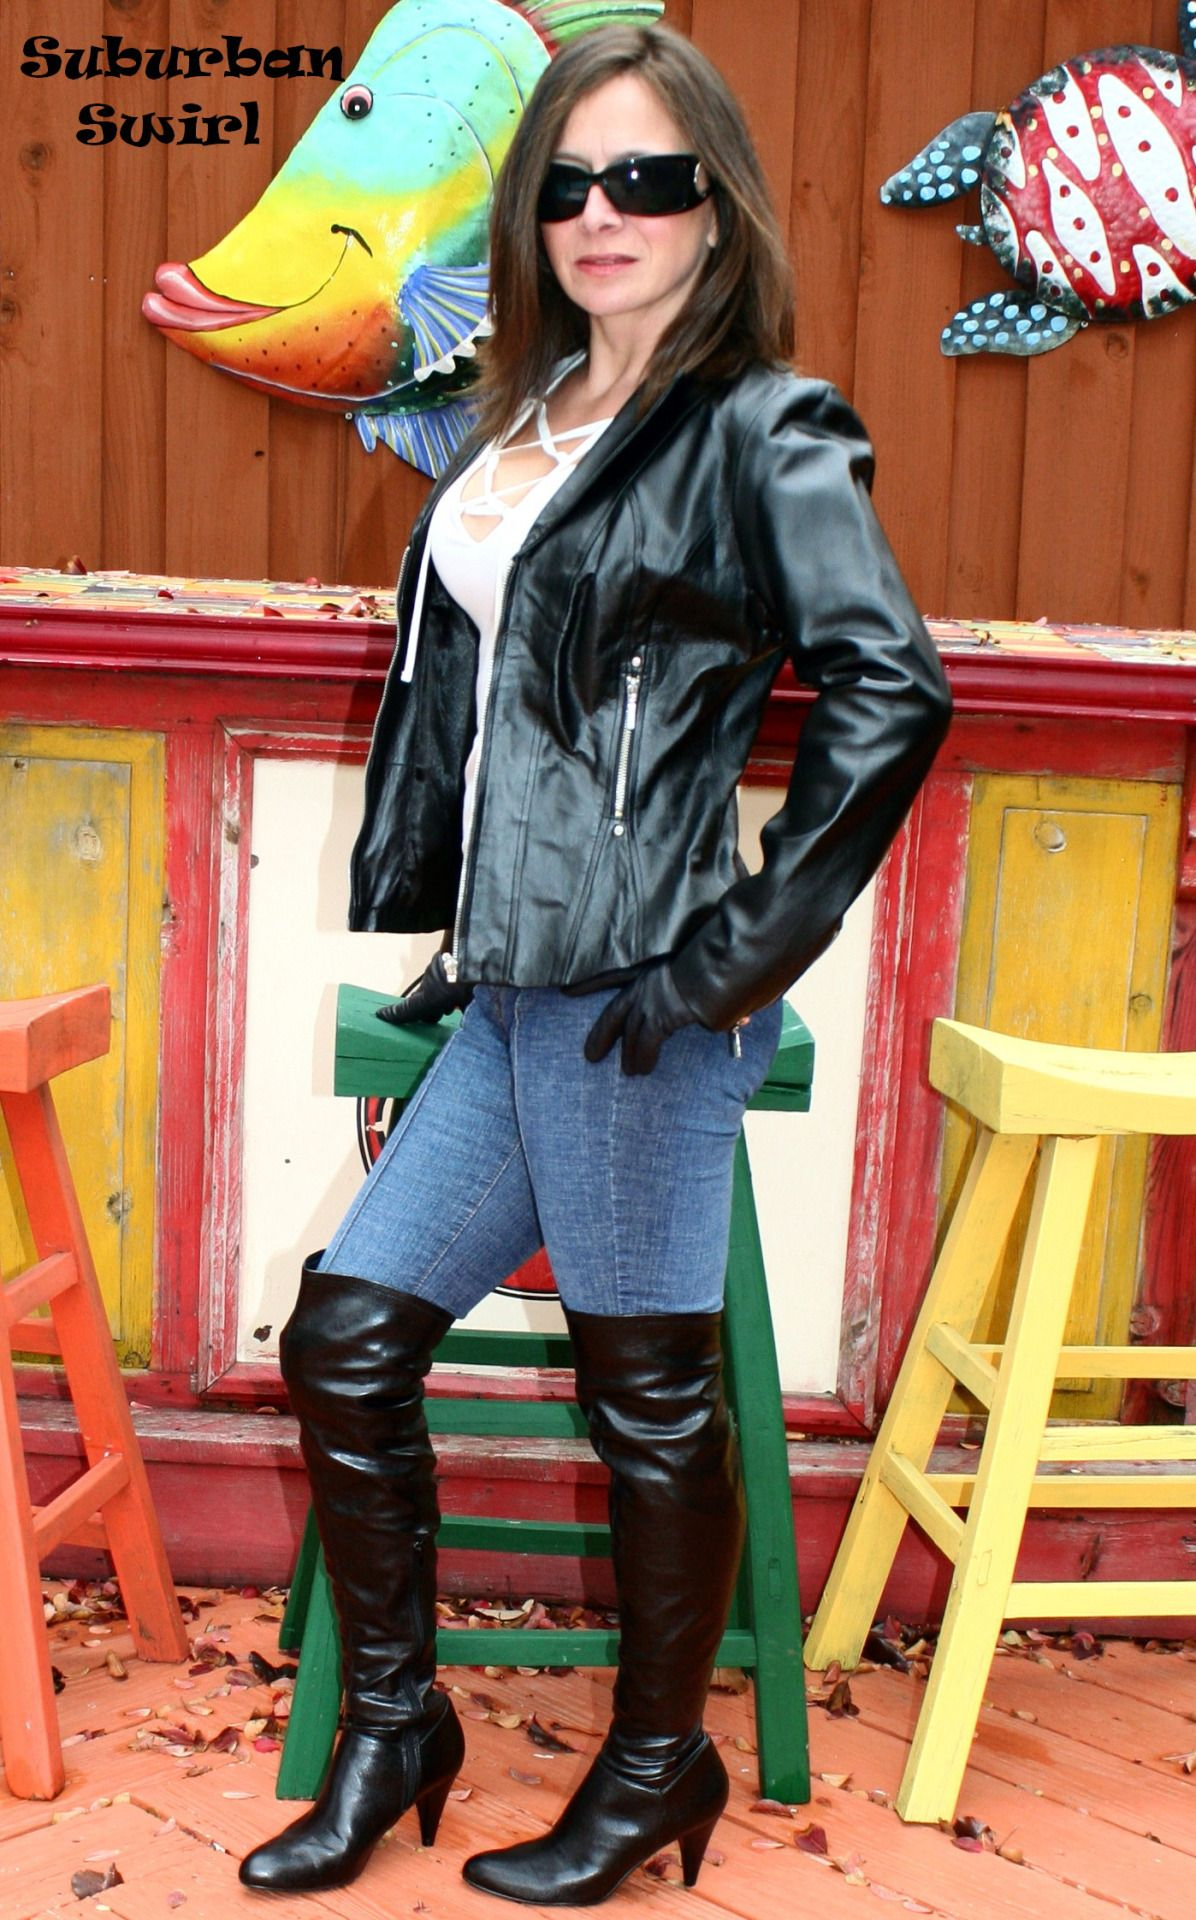 Ladies in leather gloves and boots - Leather Jacket By Metrostyle Jeans By Venus Leather Gloves By Wilsons And Boots By